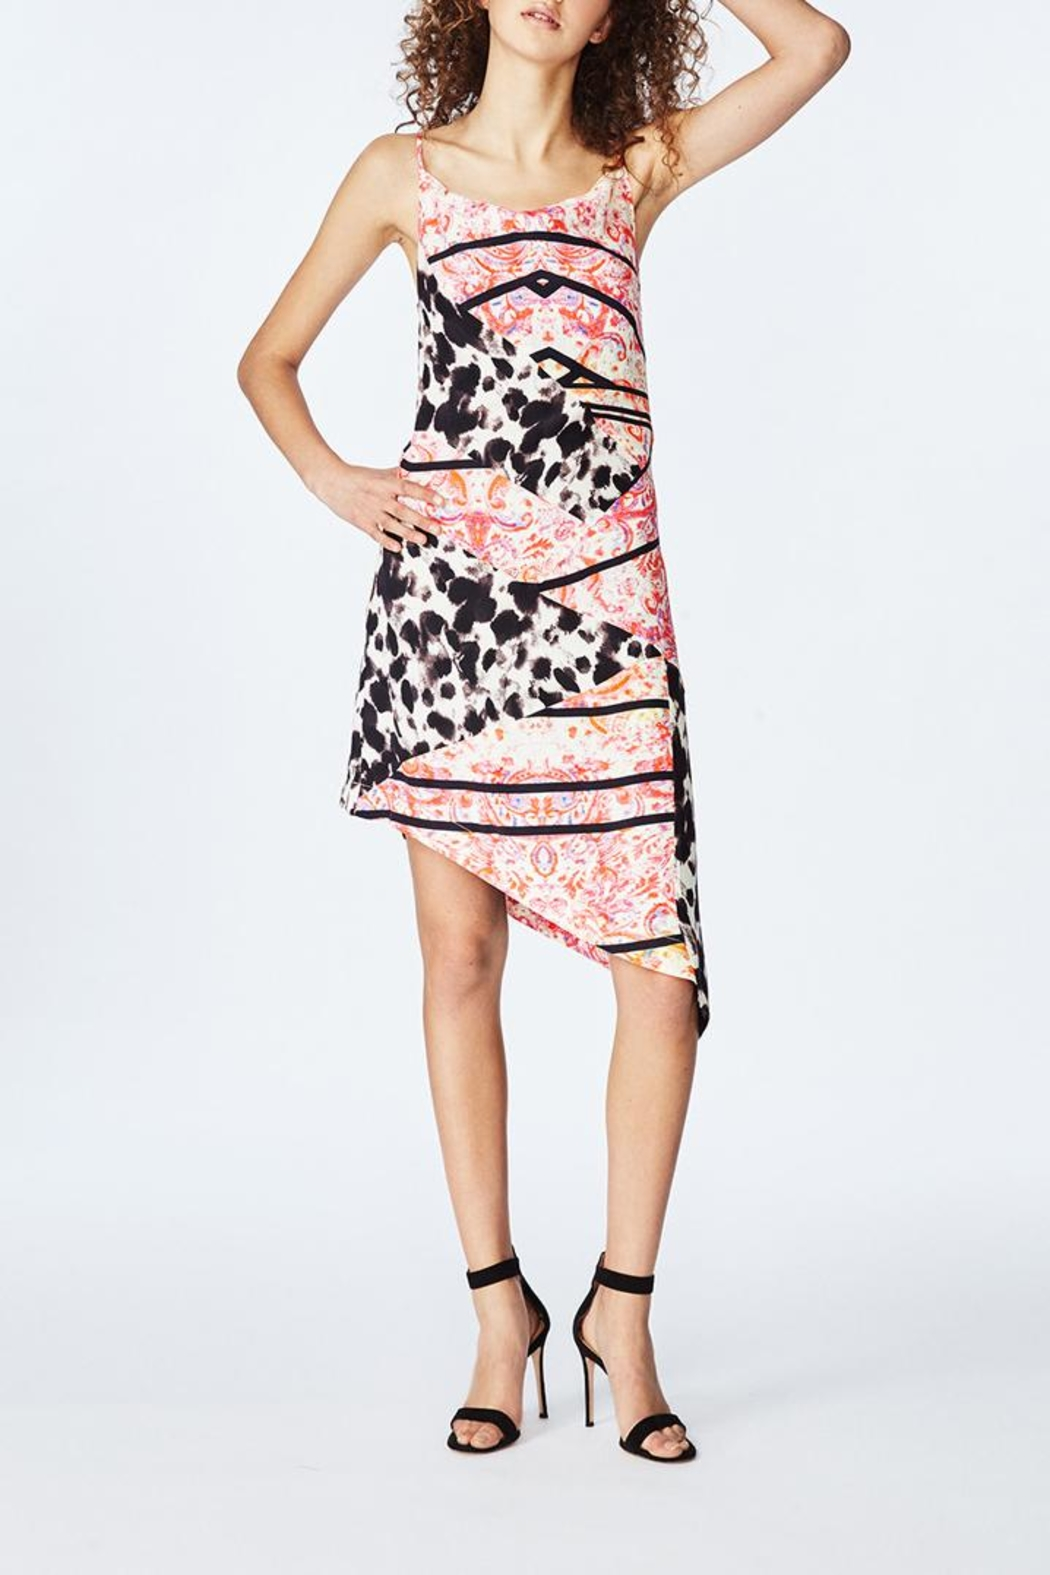 Nicole Miller Fancha Strappy Dress from Pittsburgh by Rue Boutique ...